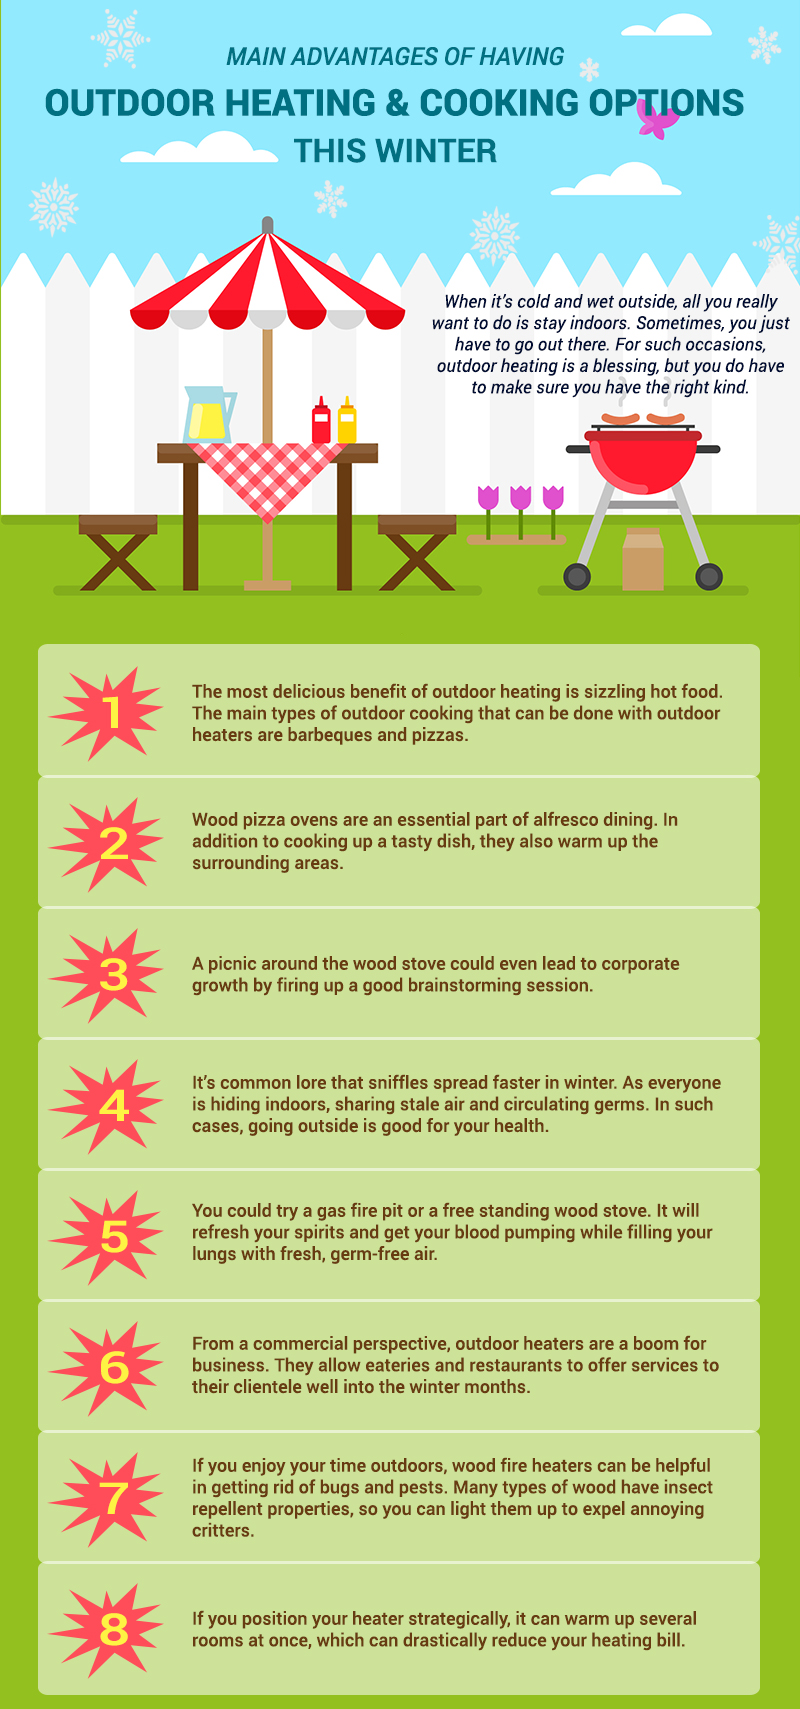 Main Advantages of Having Outdoor Heating and Cooking Options this Winter